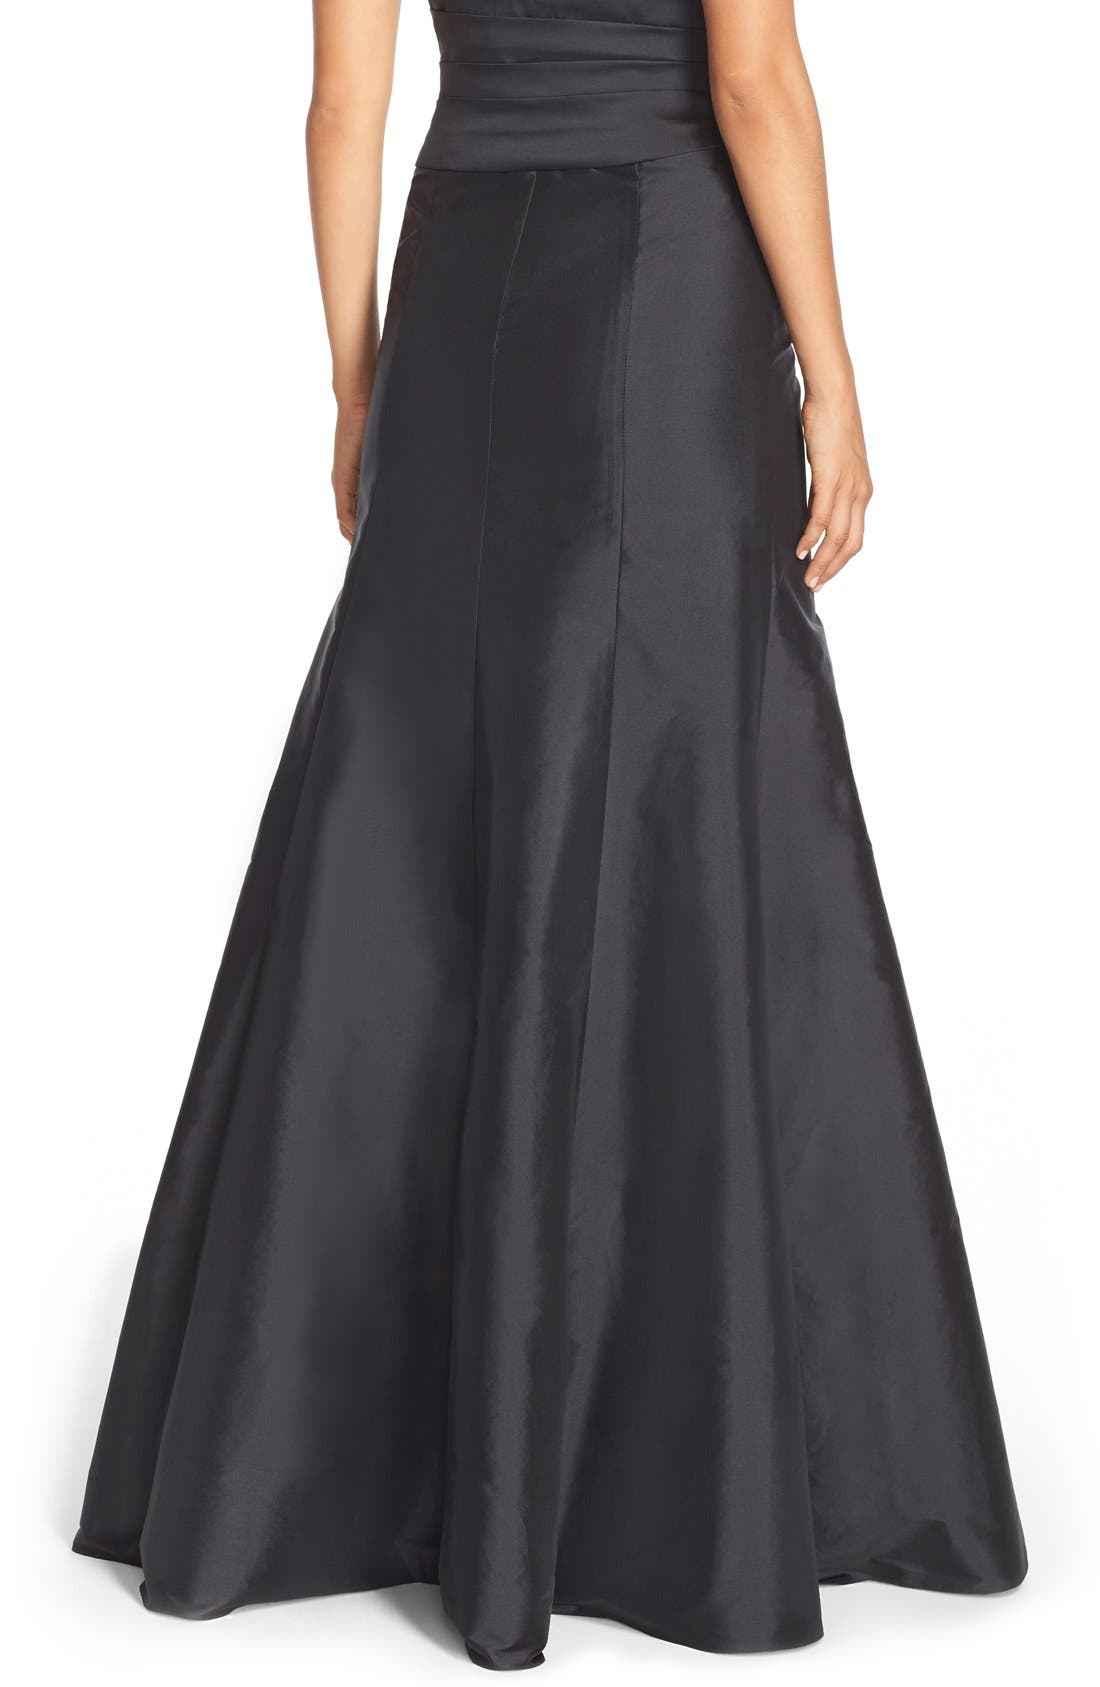 MONIQUE LHUILLIER BRIDESMAIDS, Floor Length Taffeta Mermaid Skirt, Alternate thumbnail 3, color, 001